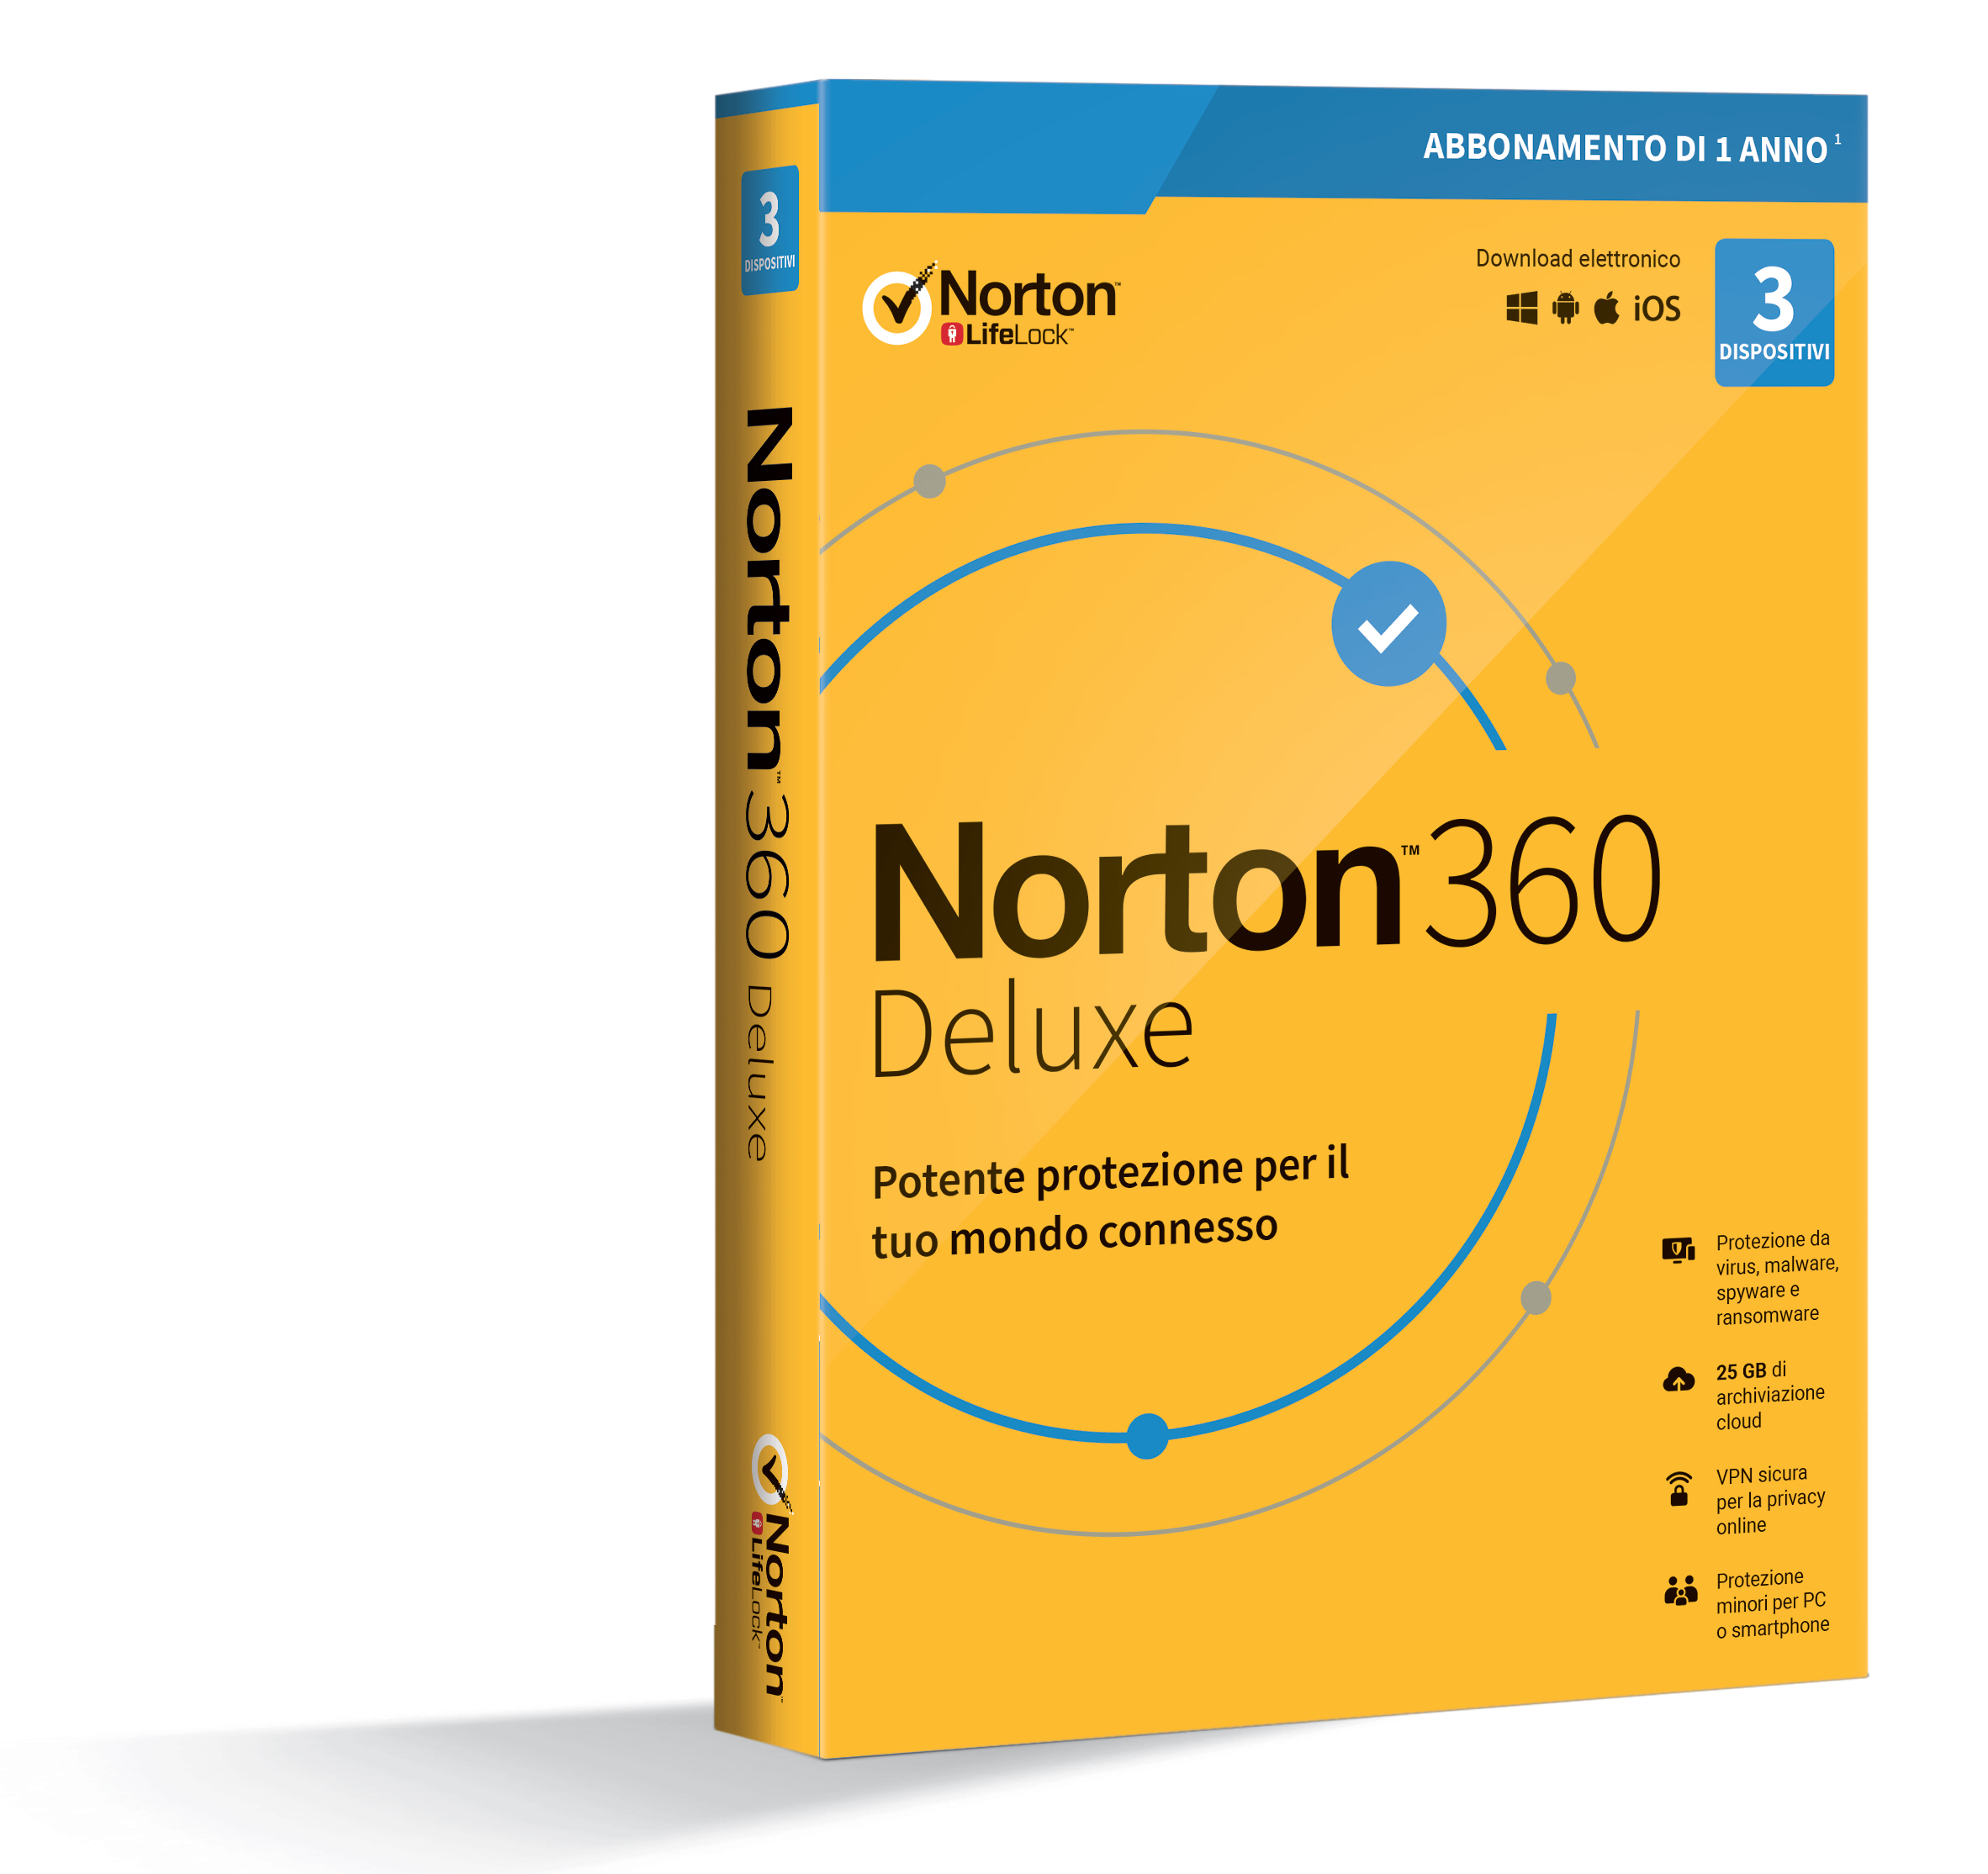 SYMANTEC NORTON 360 DELUXE 2020 3 DISPOSITIVI 12 MESI 25GB